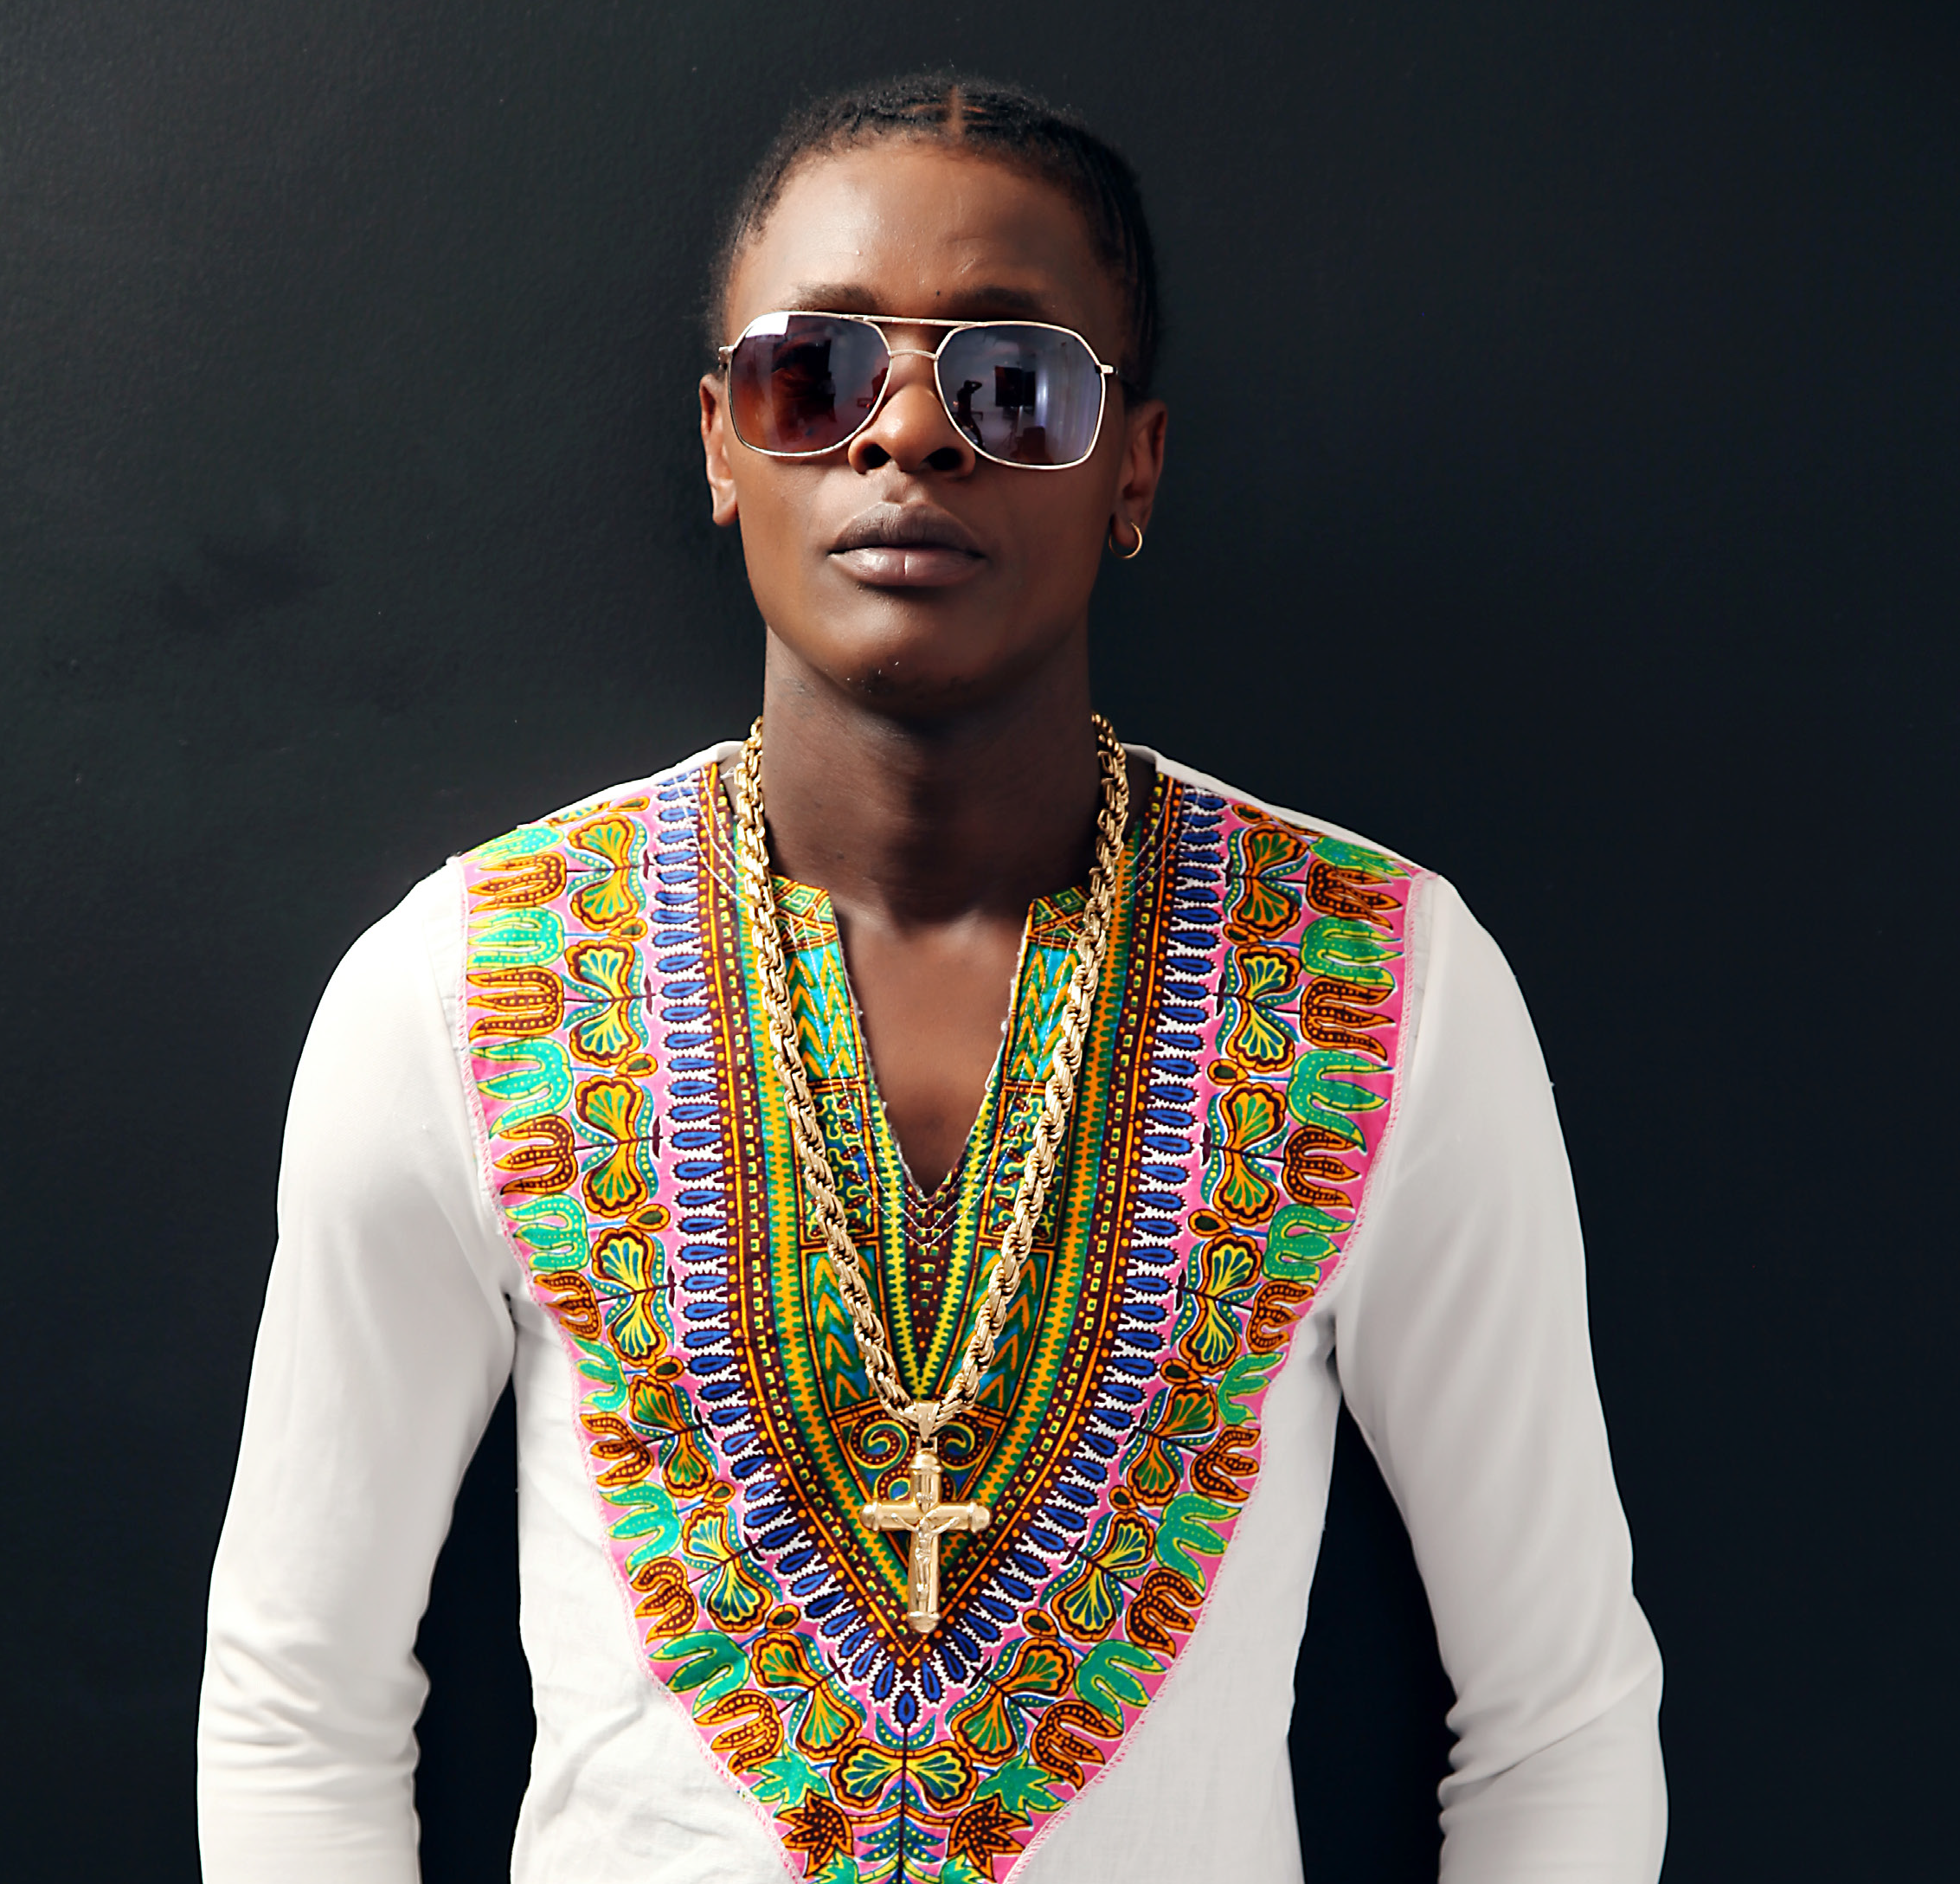 Chameleone: Jose Chameleone Starts A Talent Search To Counter Airtel